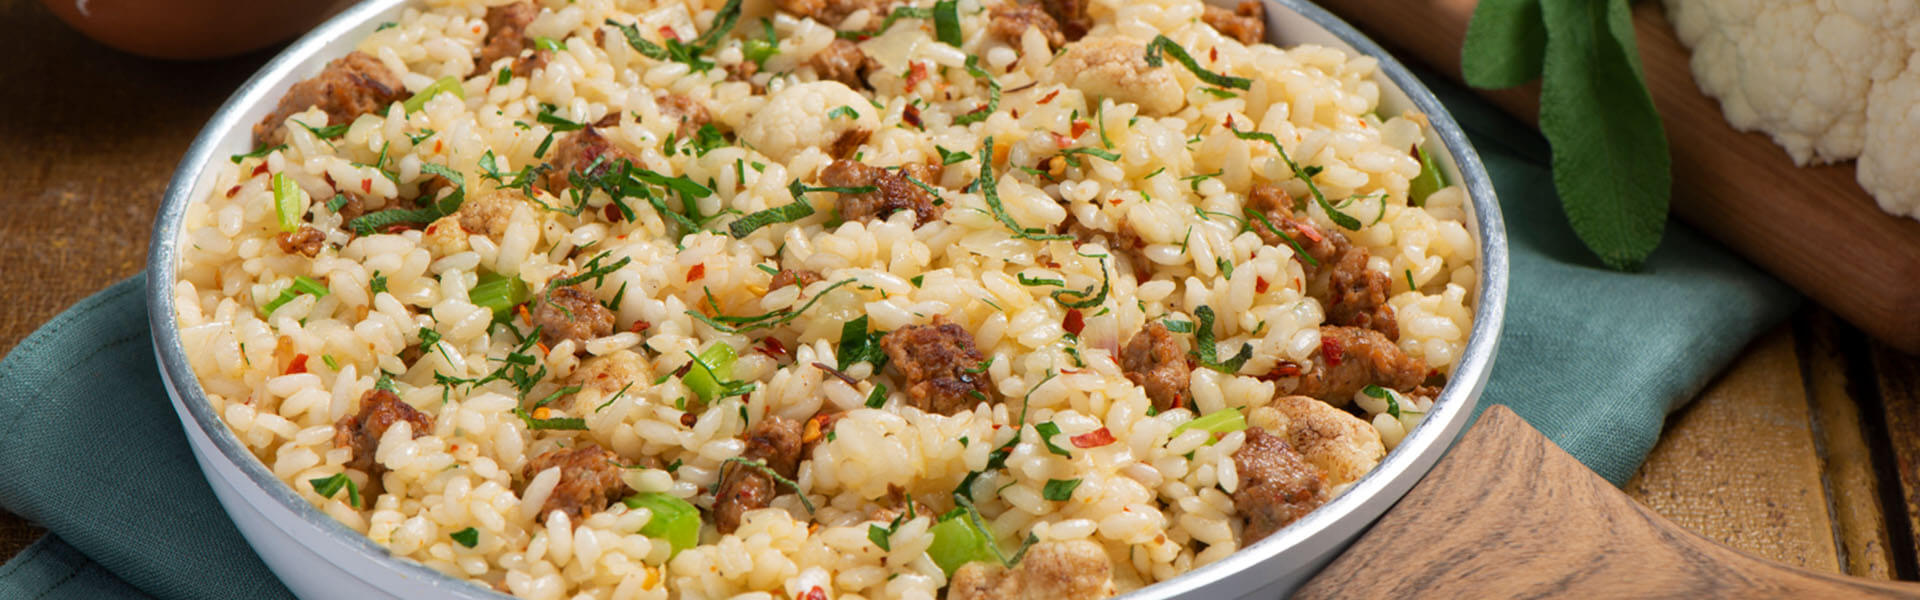 Risotto with Sausage and Cauliflower